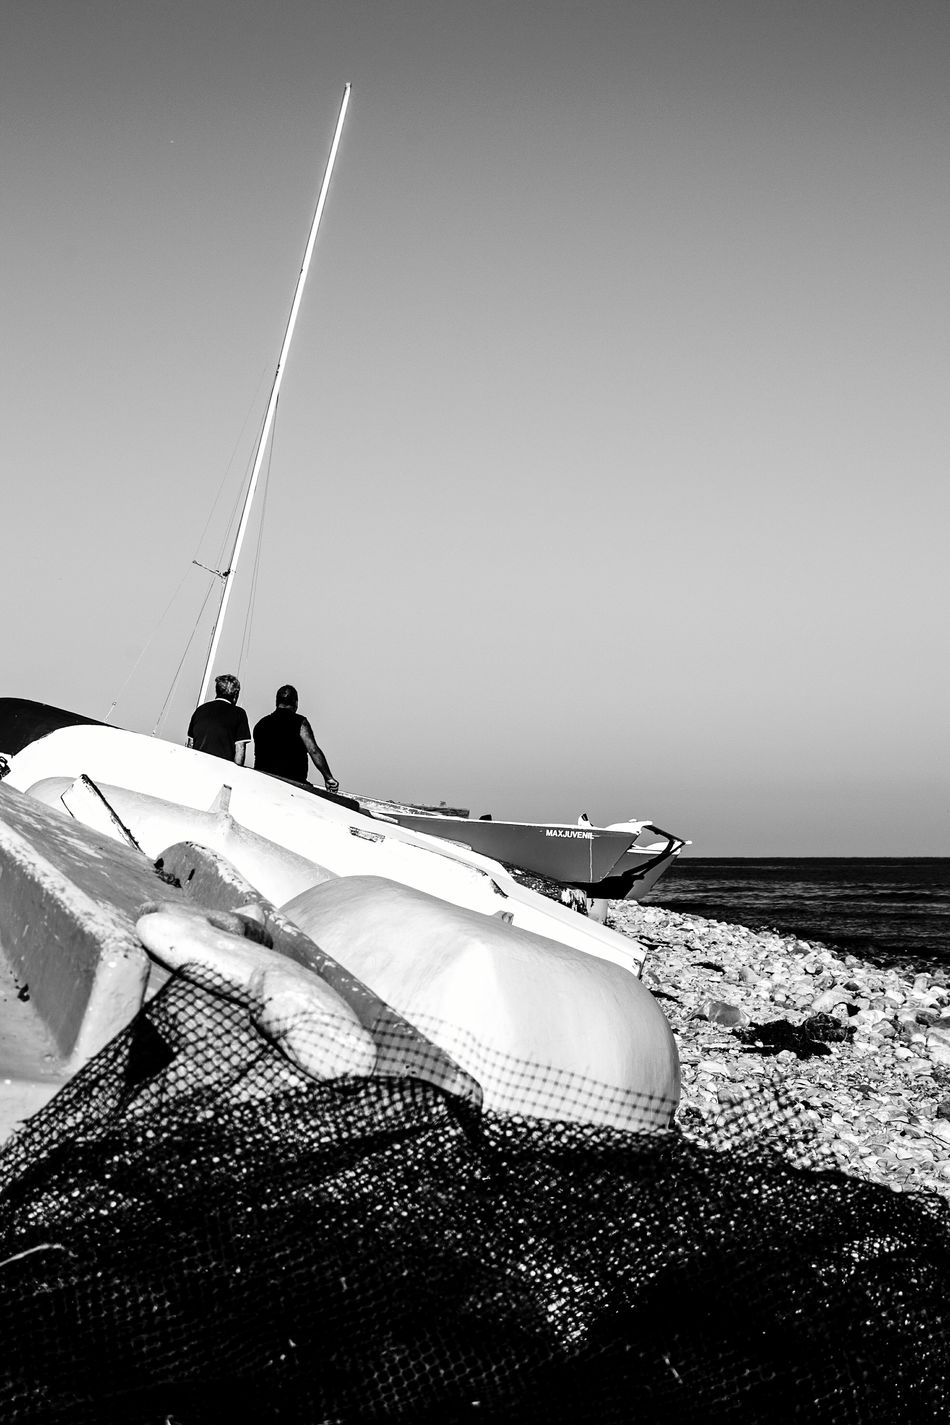 Fishing Fishing Boat Fishing Nets Sailor Life Real People Photography Themes Horizon Over Sea Blackandwhite Photography Tranquility El Campello Monochrome Photography Travel Destinations Horizon Over Water Nautical Sign Industrial Ship Ships At Sea Nautical Fishermenboat FisherMens SailorMars People Clear Sky Peaceful Place Sunlight Sea